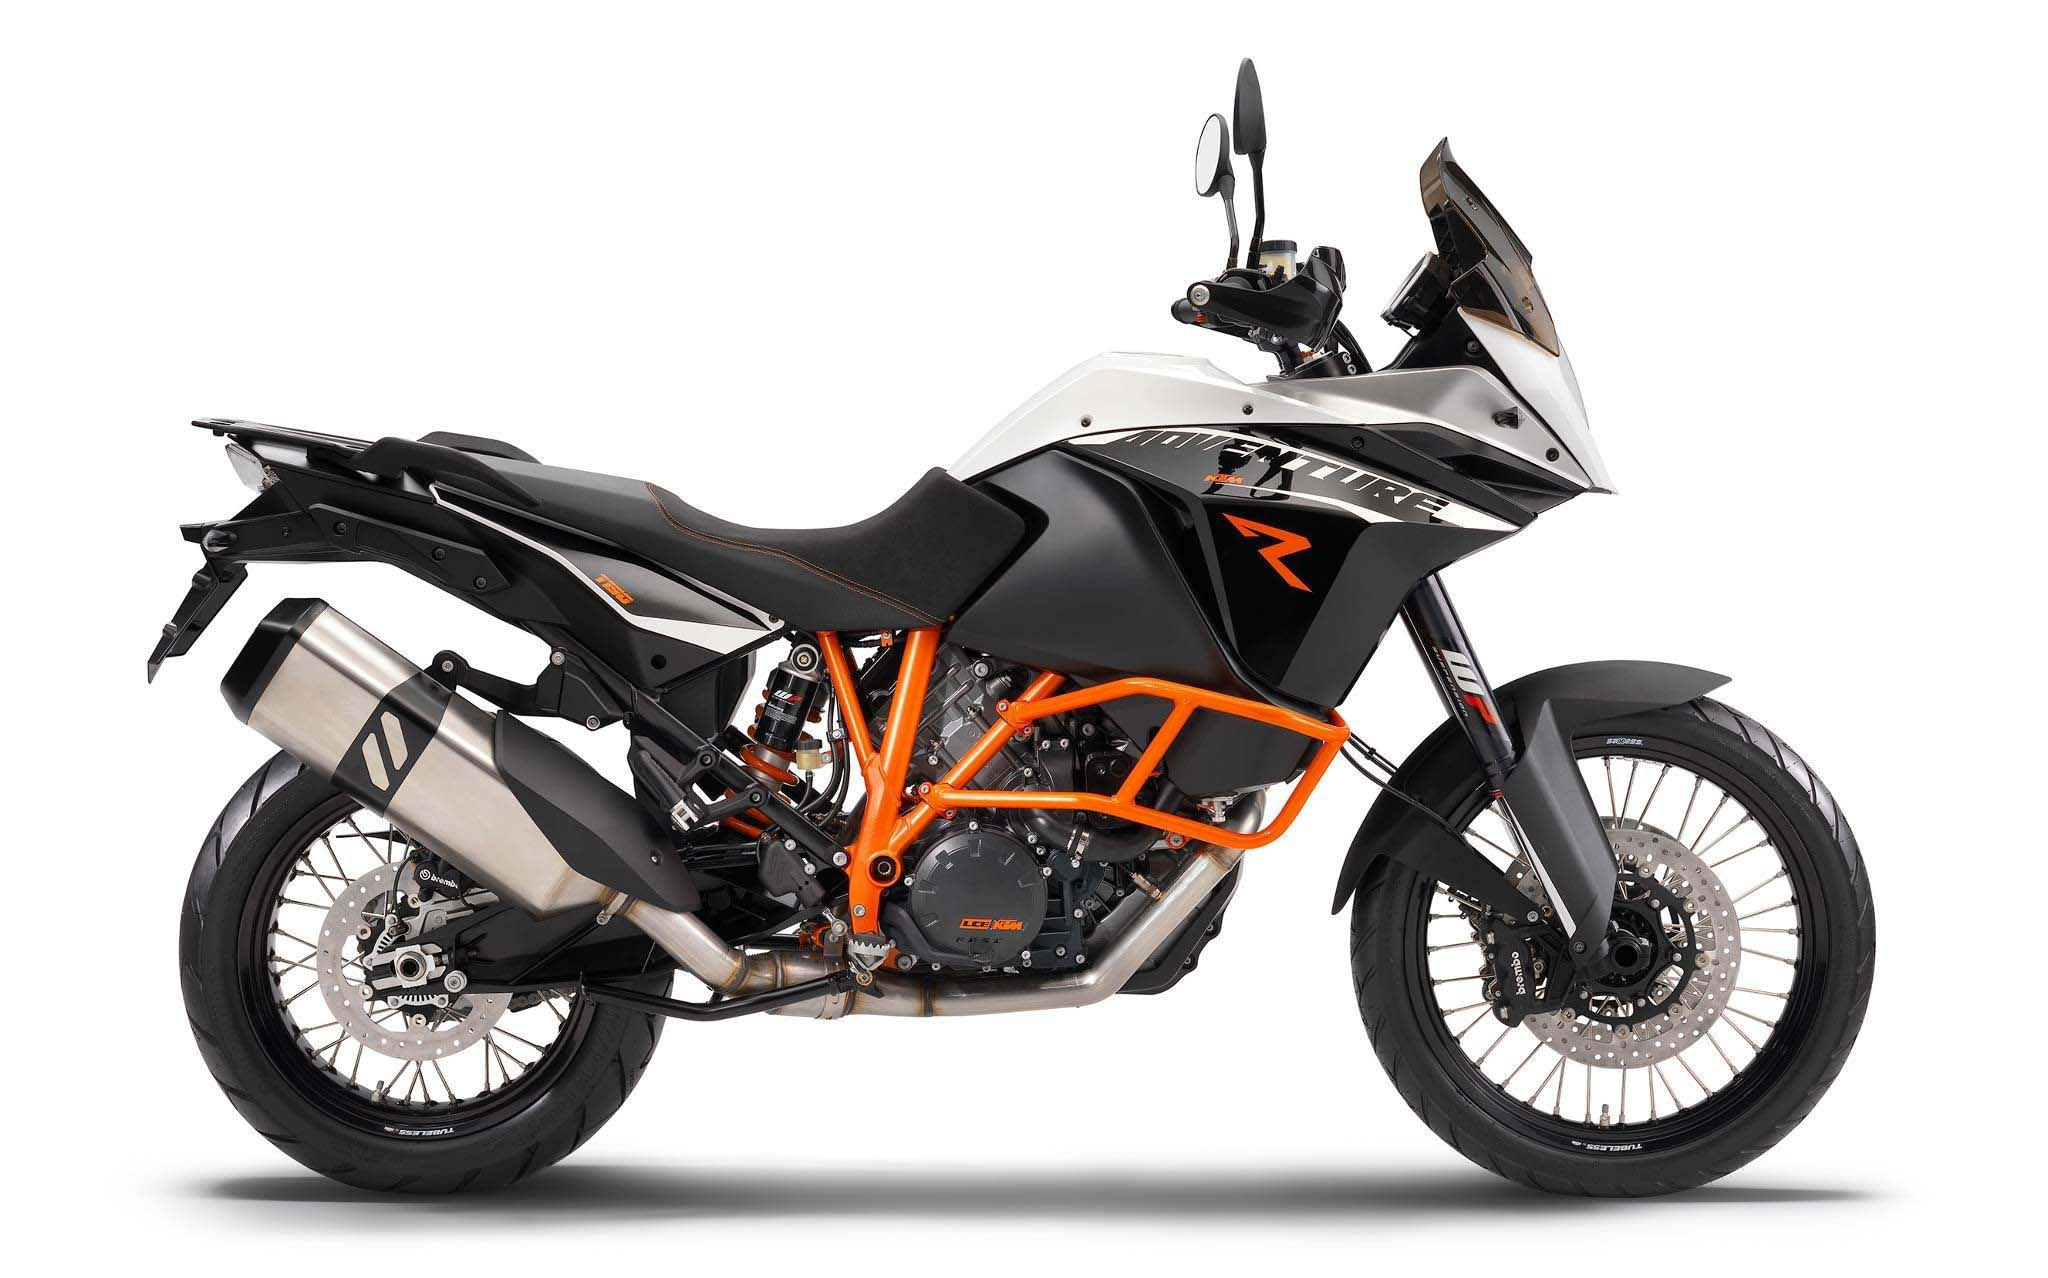 BEHOLD! the new KTM 1190 Adventure ... with tubeless tyres.  An ugly exhaust because of the  EU emission regulations, but nothing Akropovik can't sort out.